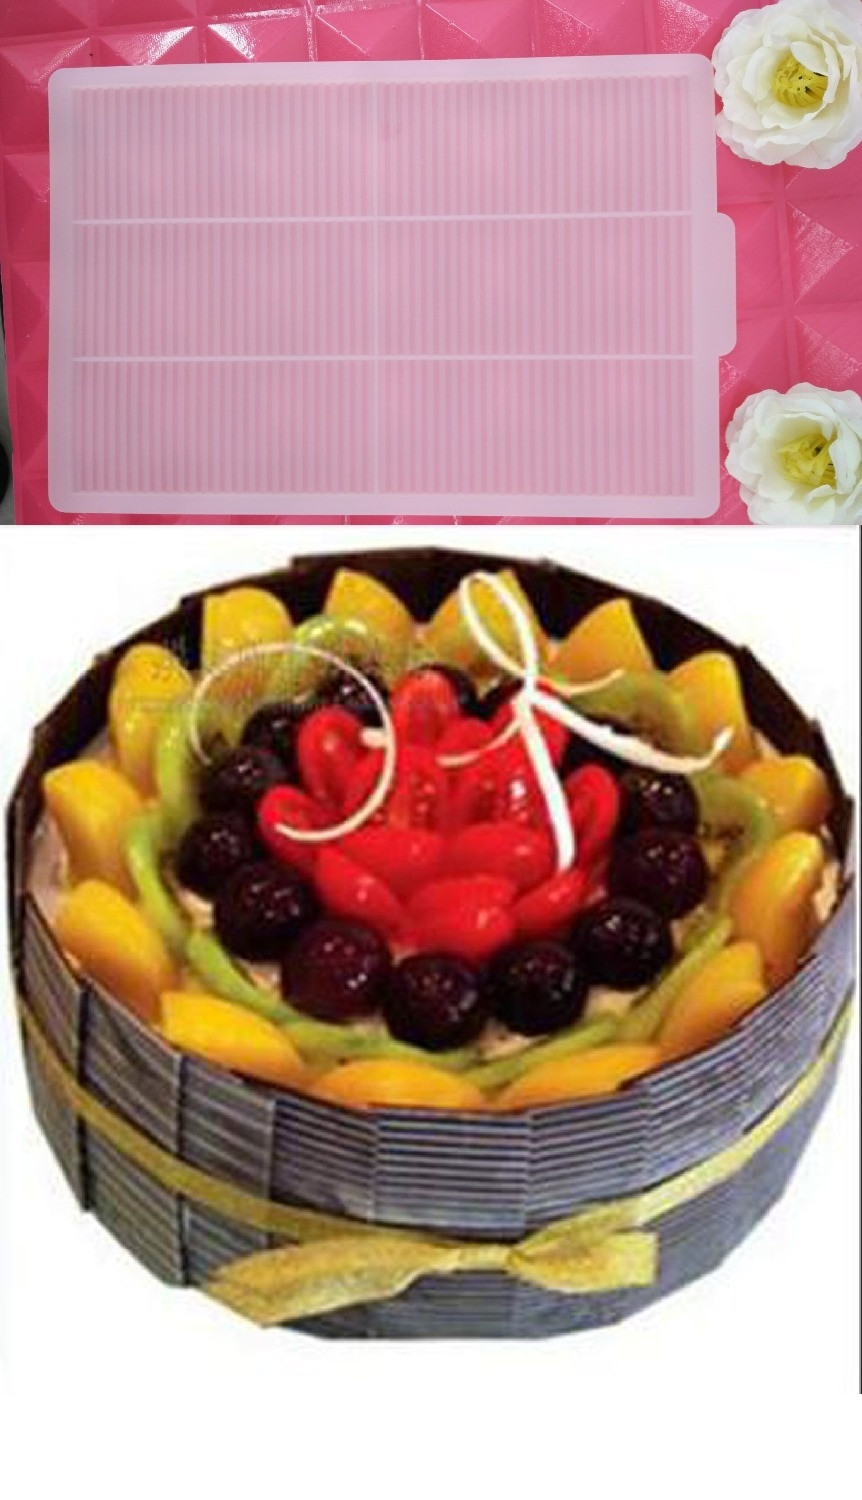 Best ideas about Moldy Birthday Cake . Save or Pin Silicone Chocolate Cake Mold 3D Strip Sugar Craft Mould Now.